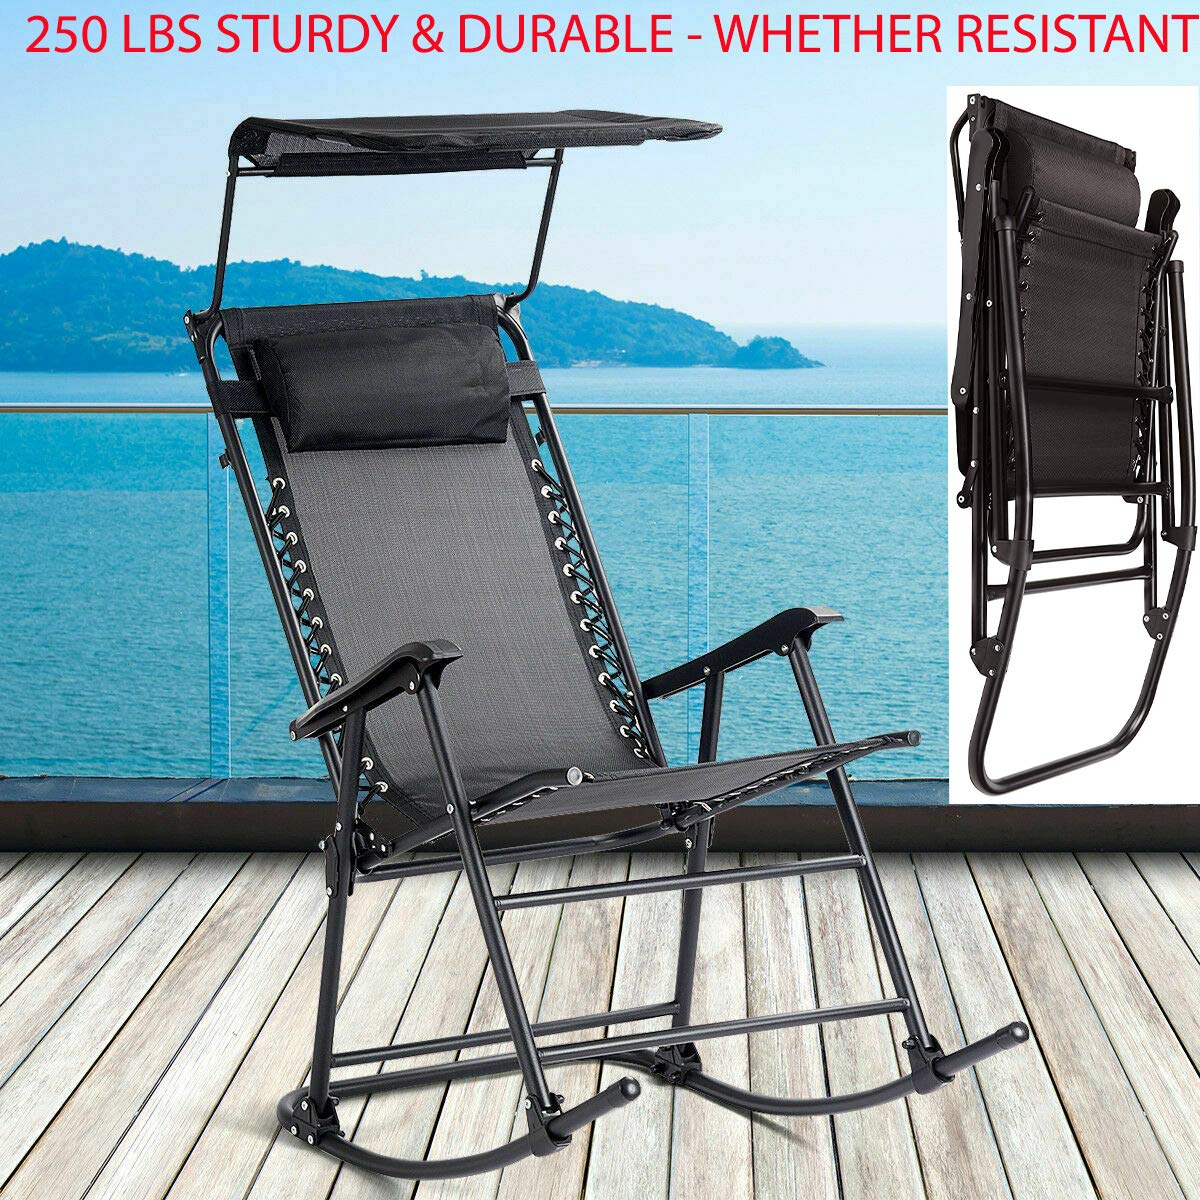 250 Lbs Sturdy & Durable Folding Rocking Chair Rocker Porch Zero Gravity Furniture with A Soft Pillow and Sunshade Canopy Perfect for Outdoor Indoor in Your Home Use Black by Sunnady